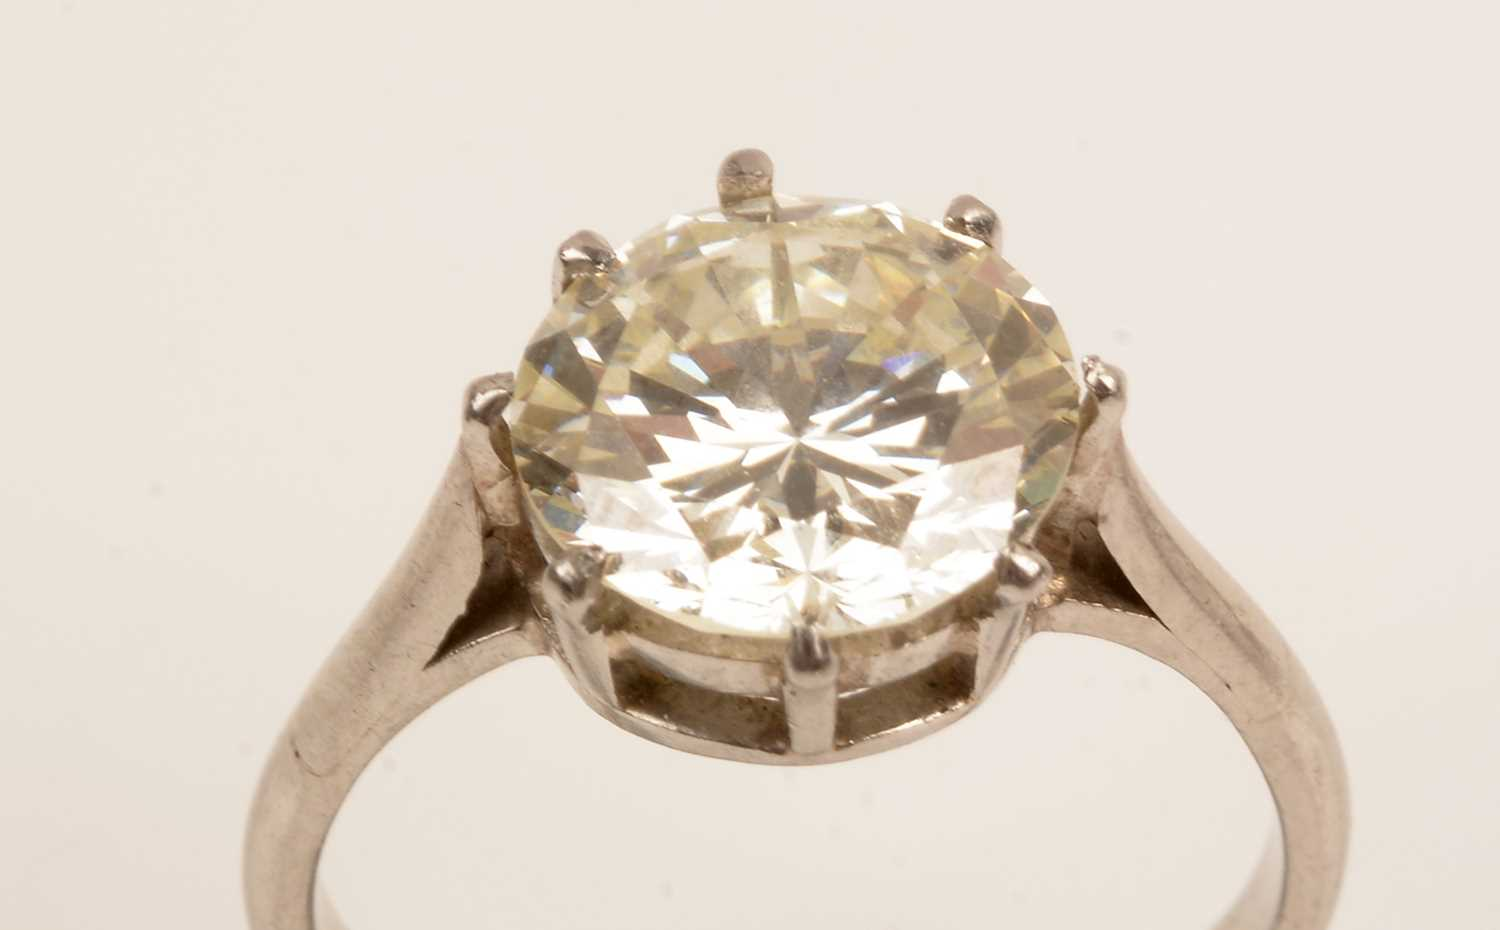 Lot 55 - Solitaire diamond ring